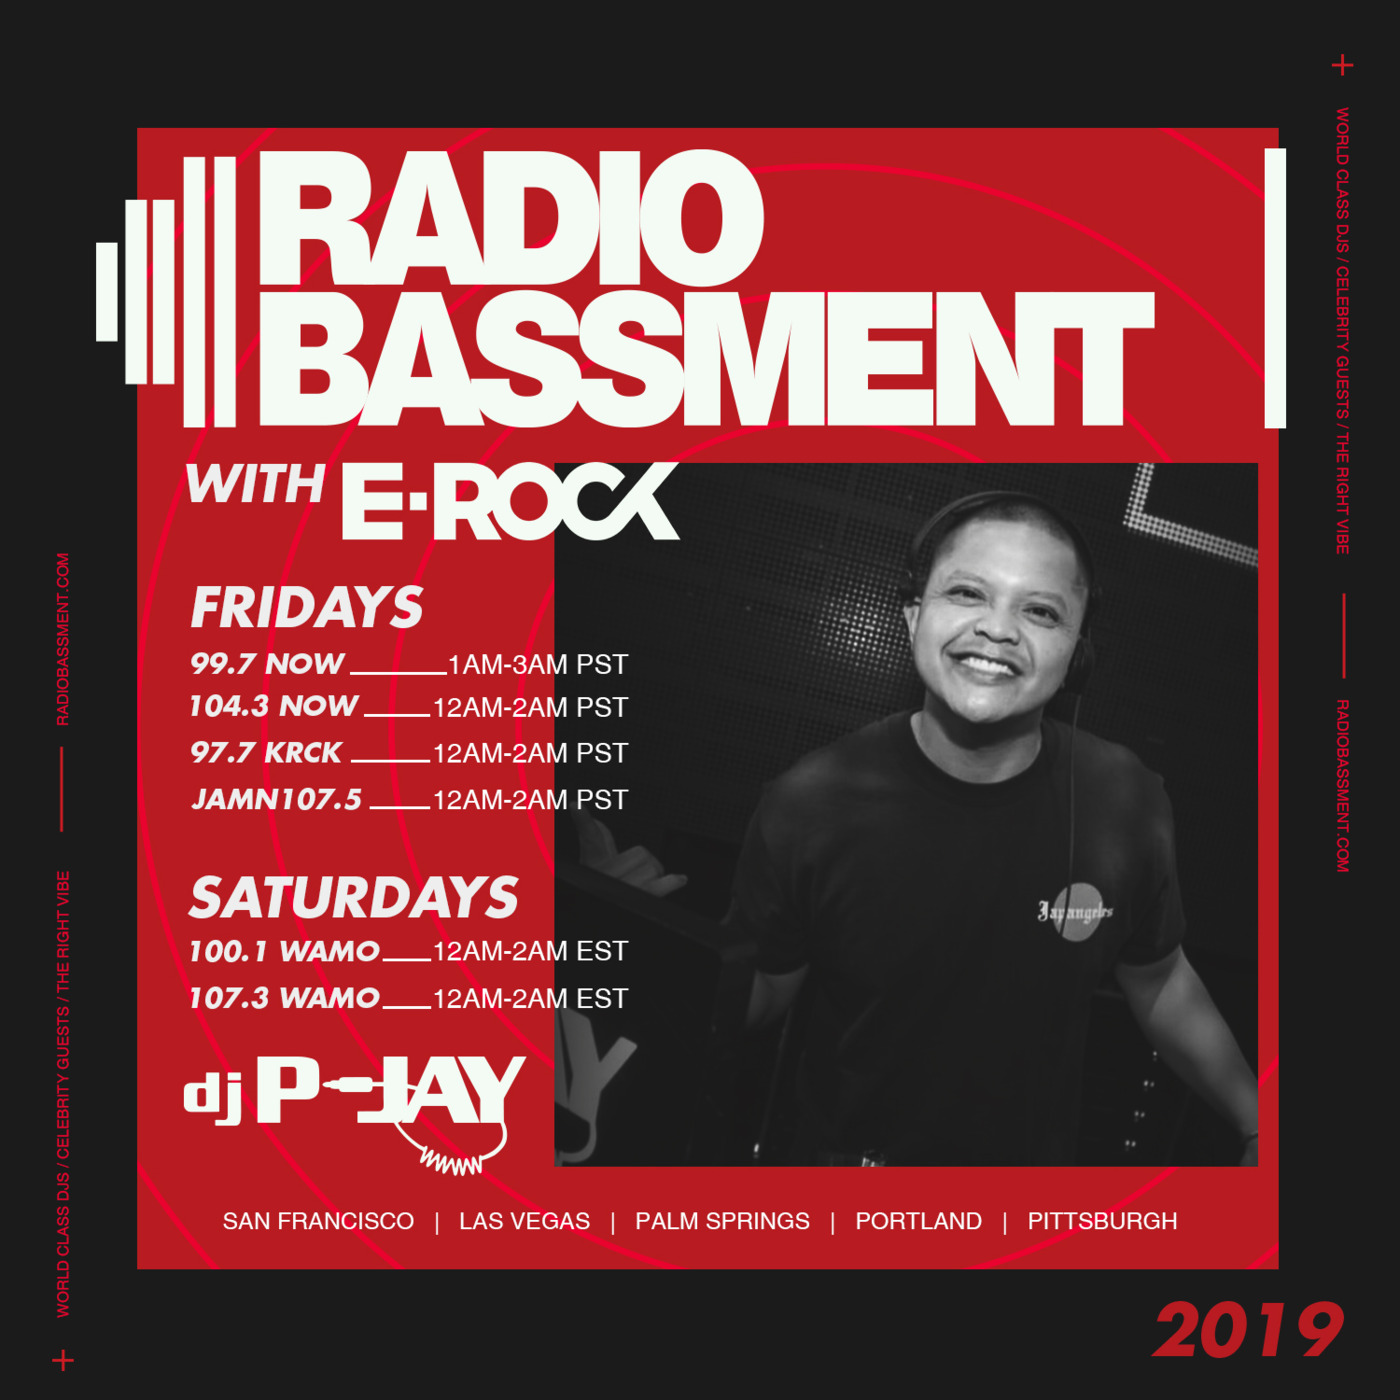 The Bassment W/ DJ P-Jay 07 05 19 The Bassment W/ DJ E-Rock